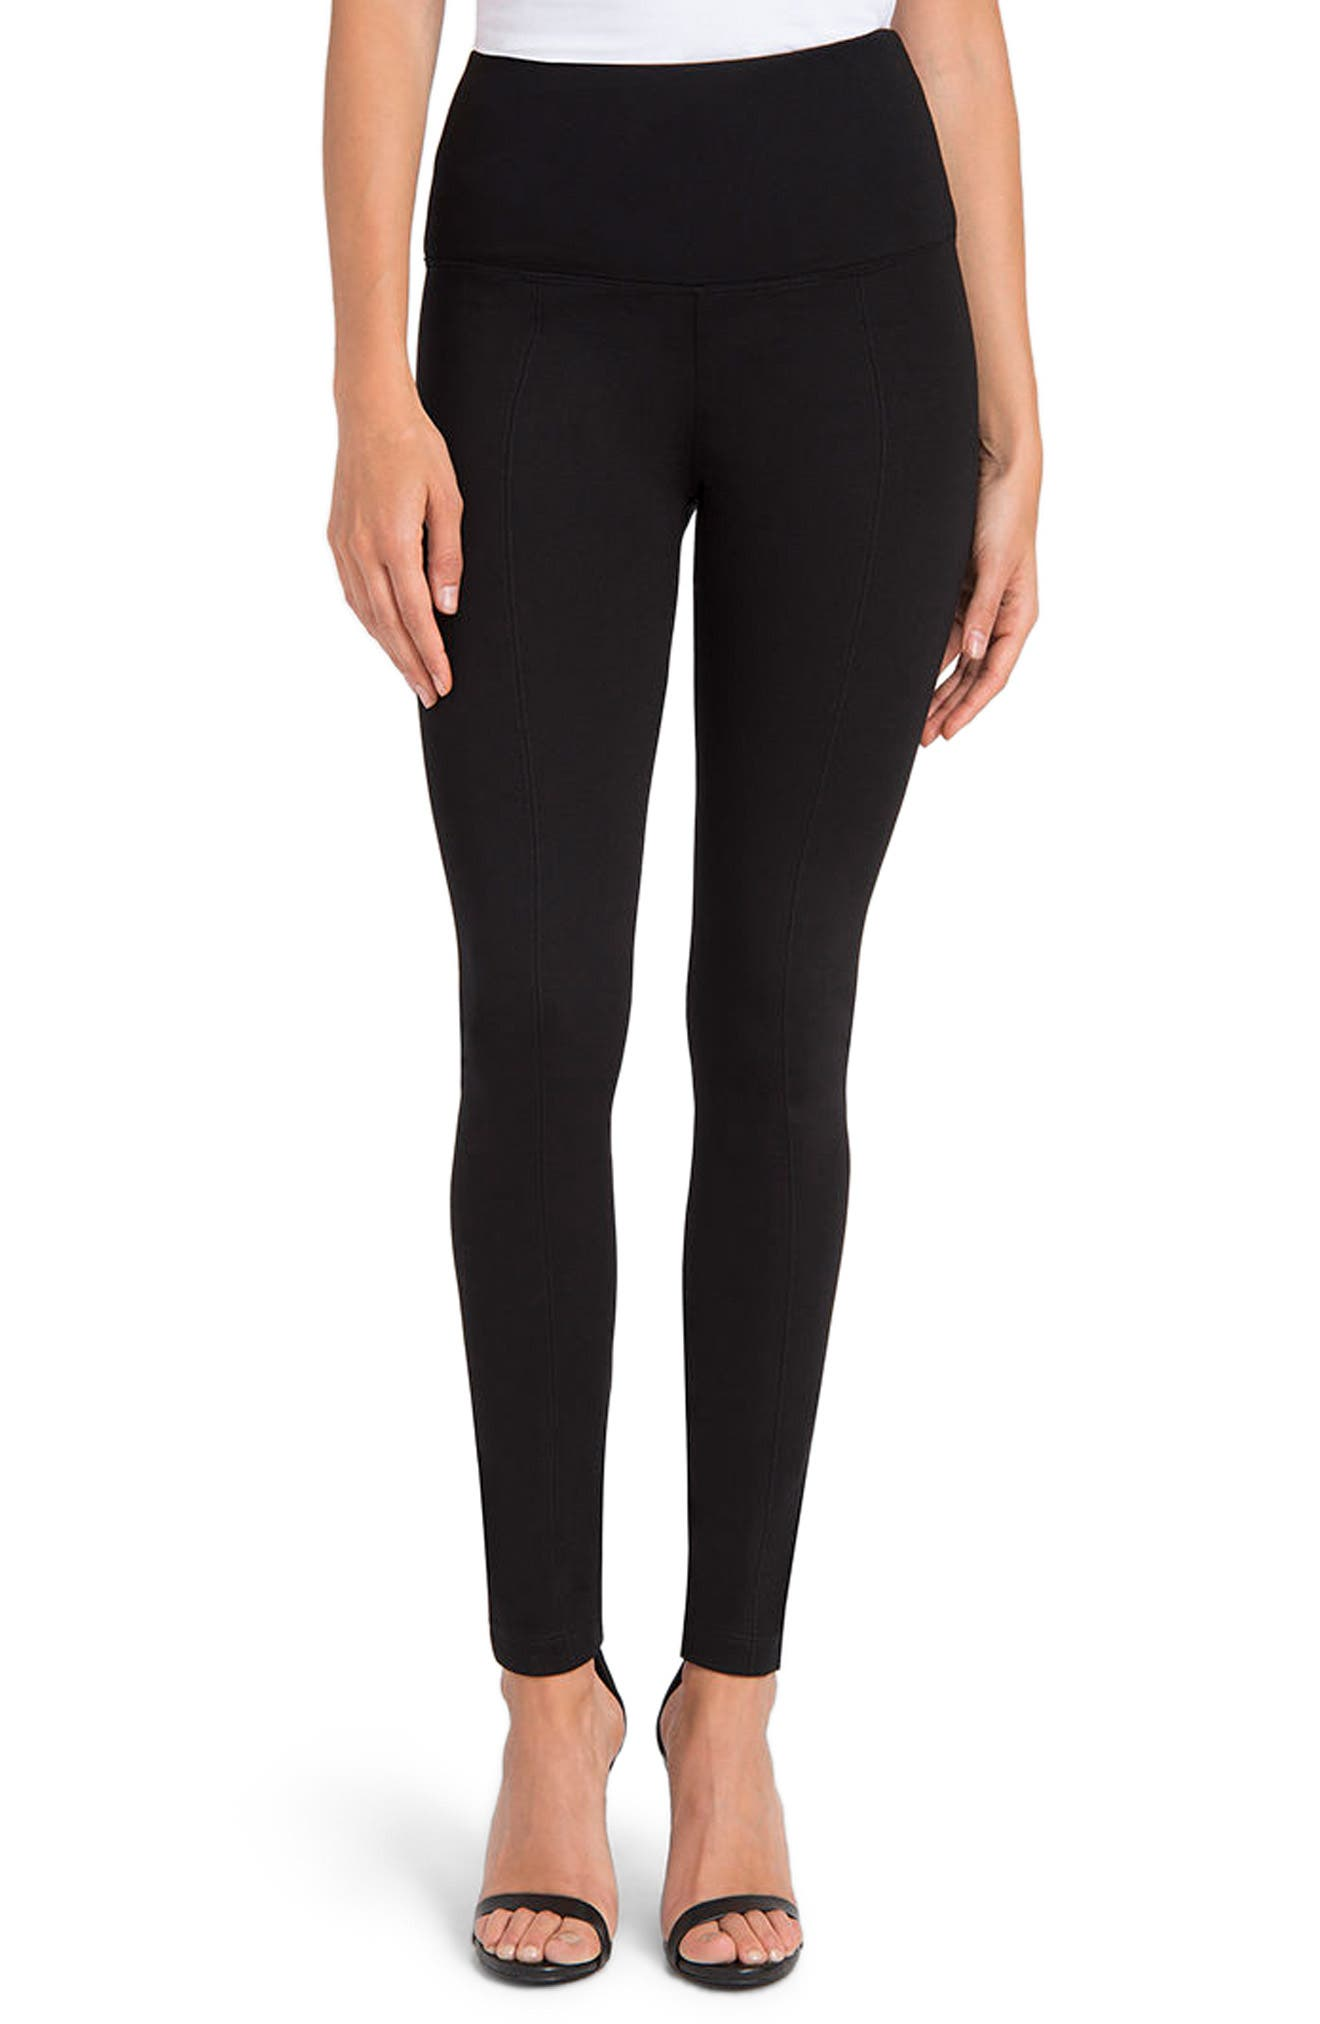 Main Image - Lyssé Center Seam Ponte Leggings